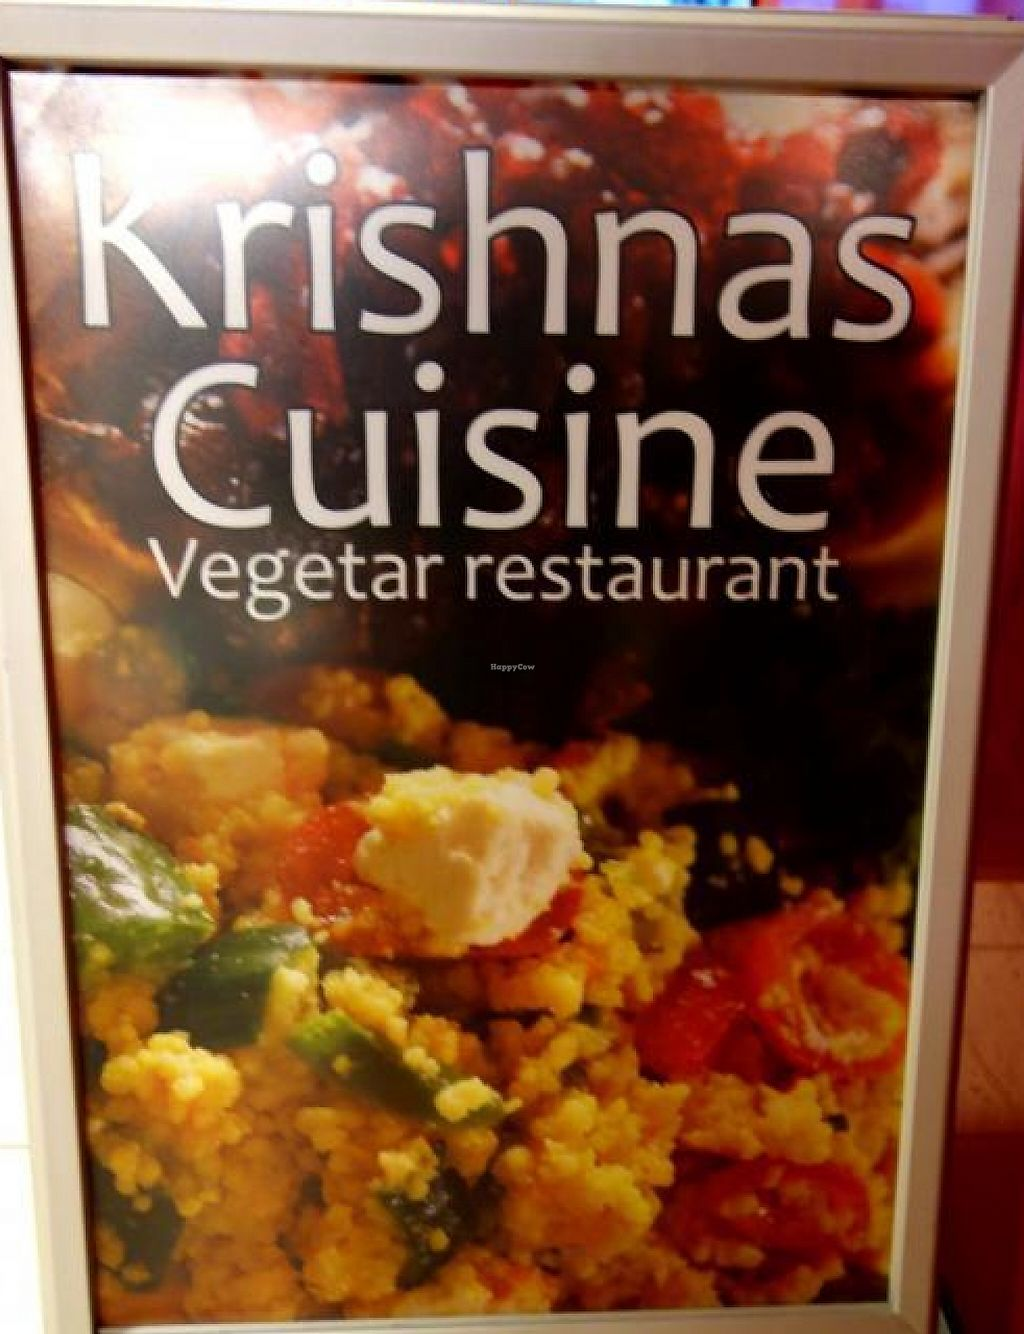 """Photo of Krishna's Cuisine  by <a href=""""/members/profile/Gudrun"""">Gudrun</a> <br/>Krishna's Cuisine <br/> November 30, 2013  - <a href='/contact/abuse/image/1027/240612'>Report</a>"""